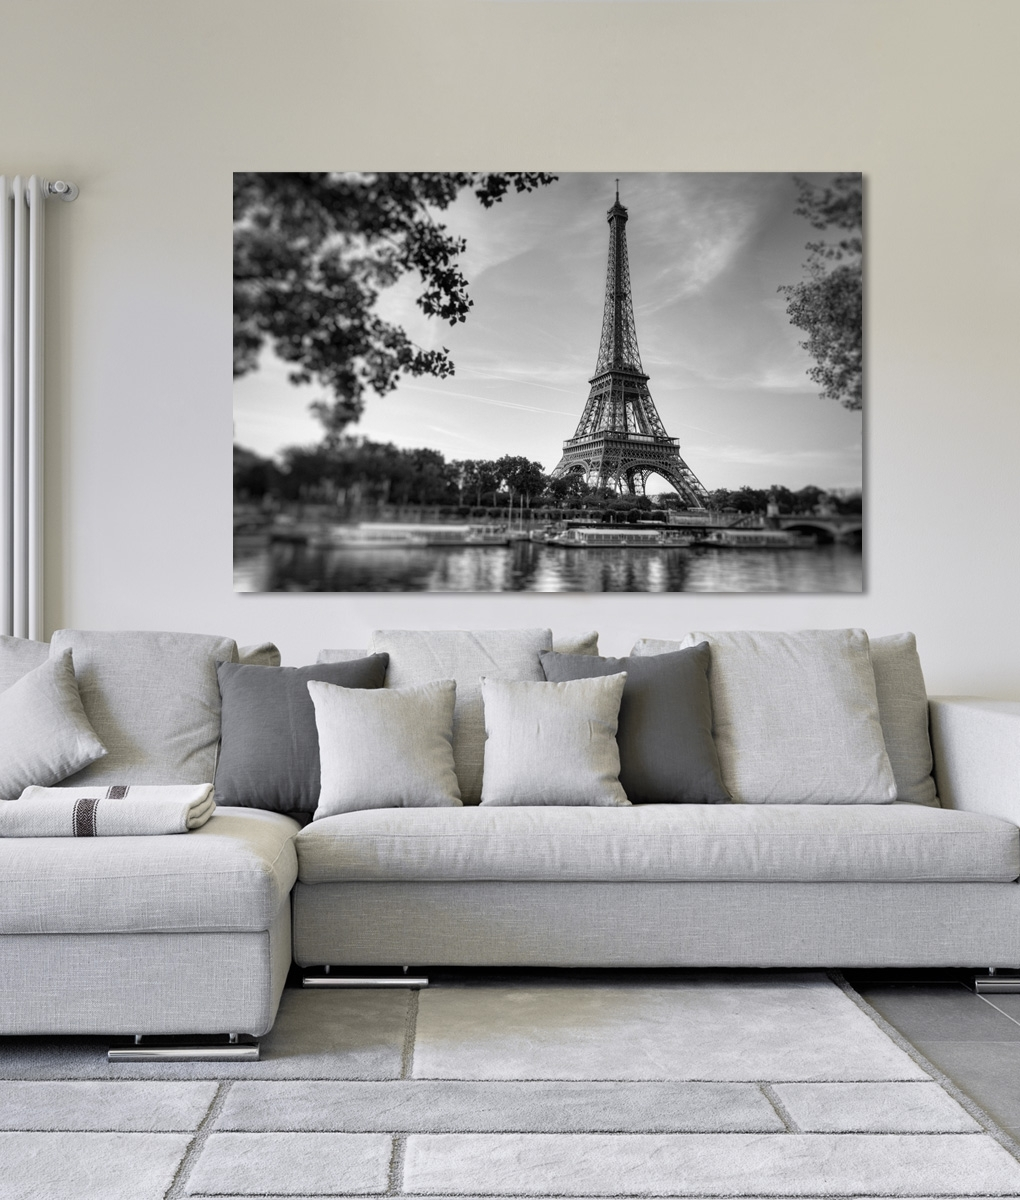 Paris Siene River Eiffel Tower Canvas Print | Framingland Pertaining To Latest Canvas Wall Art Of Paris (View 10 of 15)